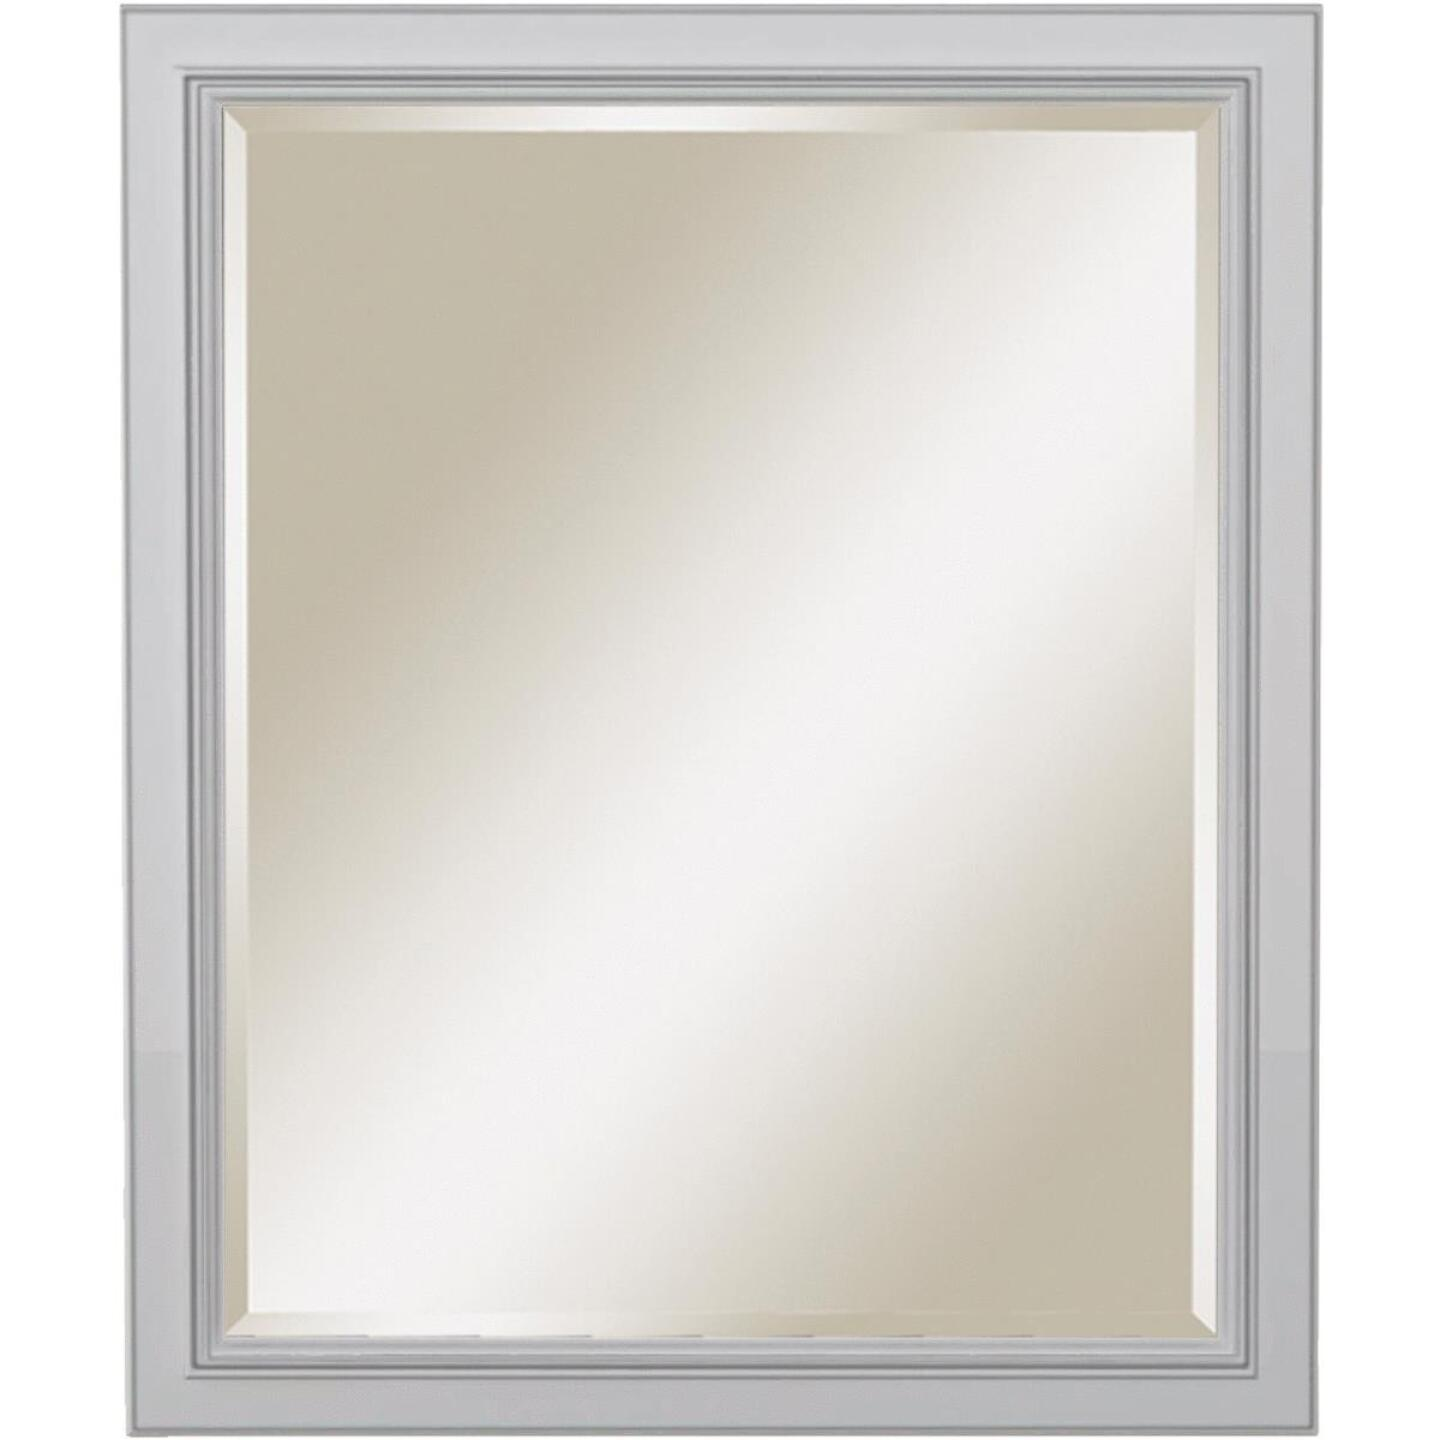 Sunny Wood Riley 30 In. W x 36 In. H Beveled Framed Mirror Image 1